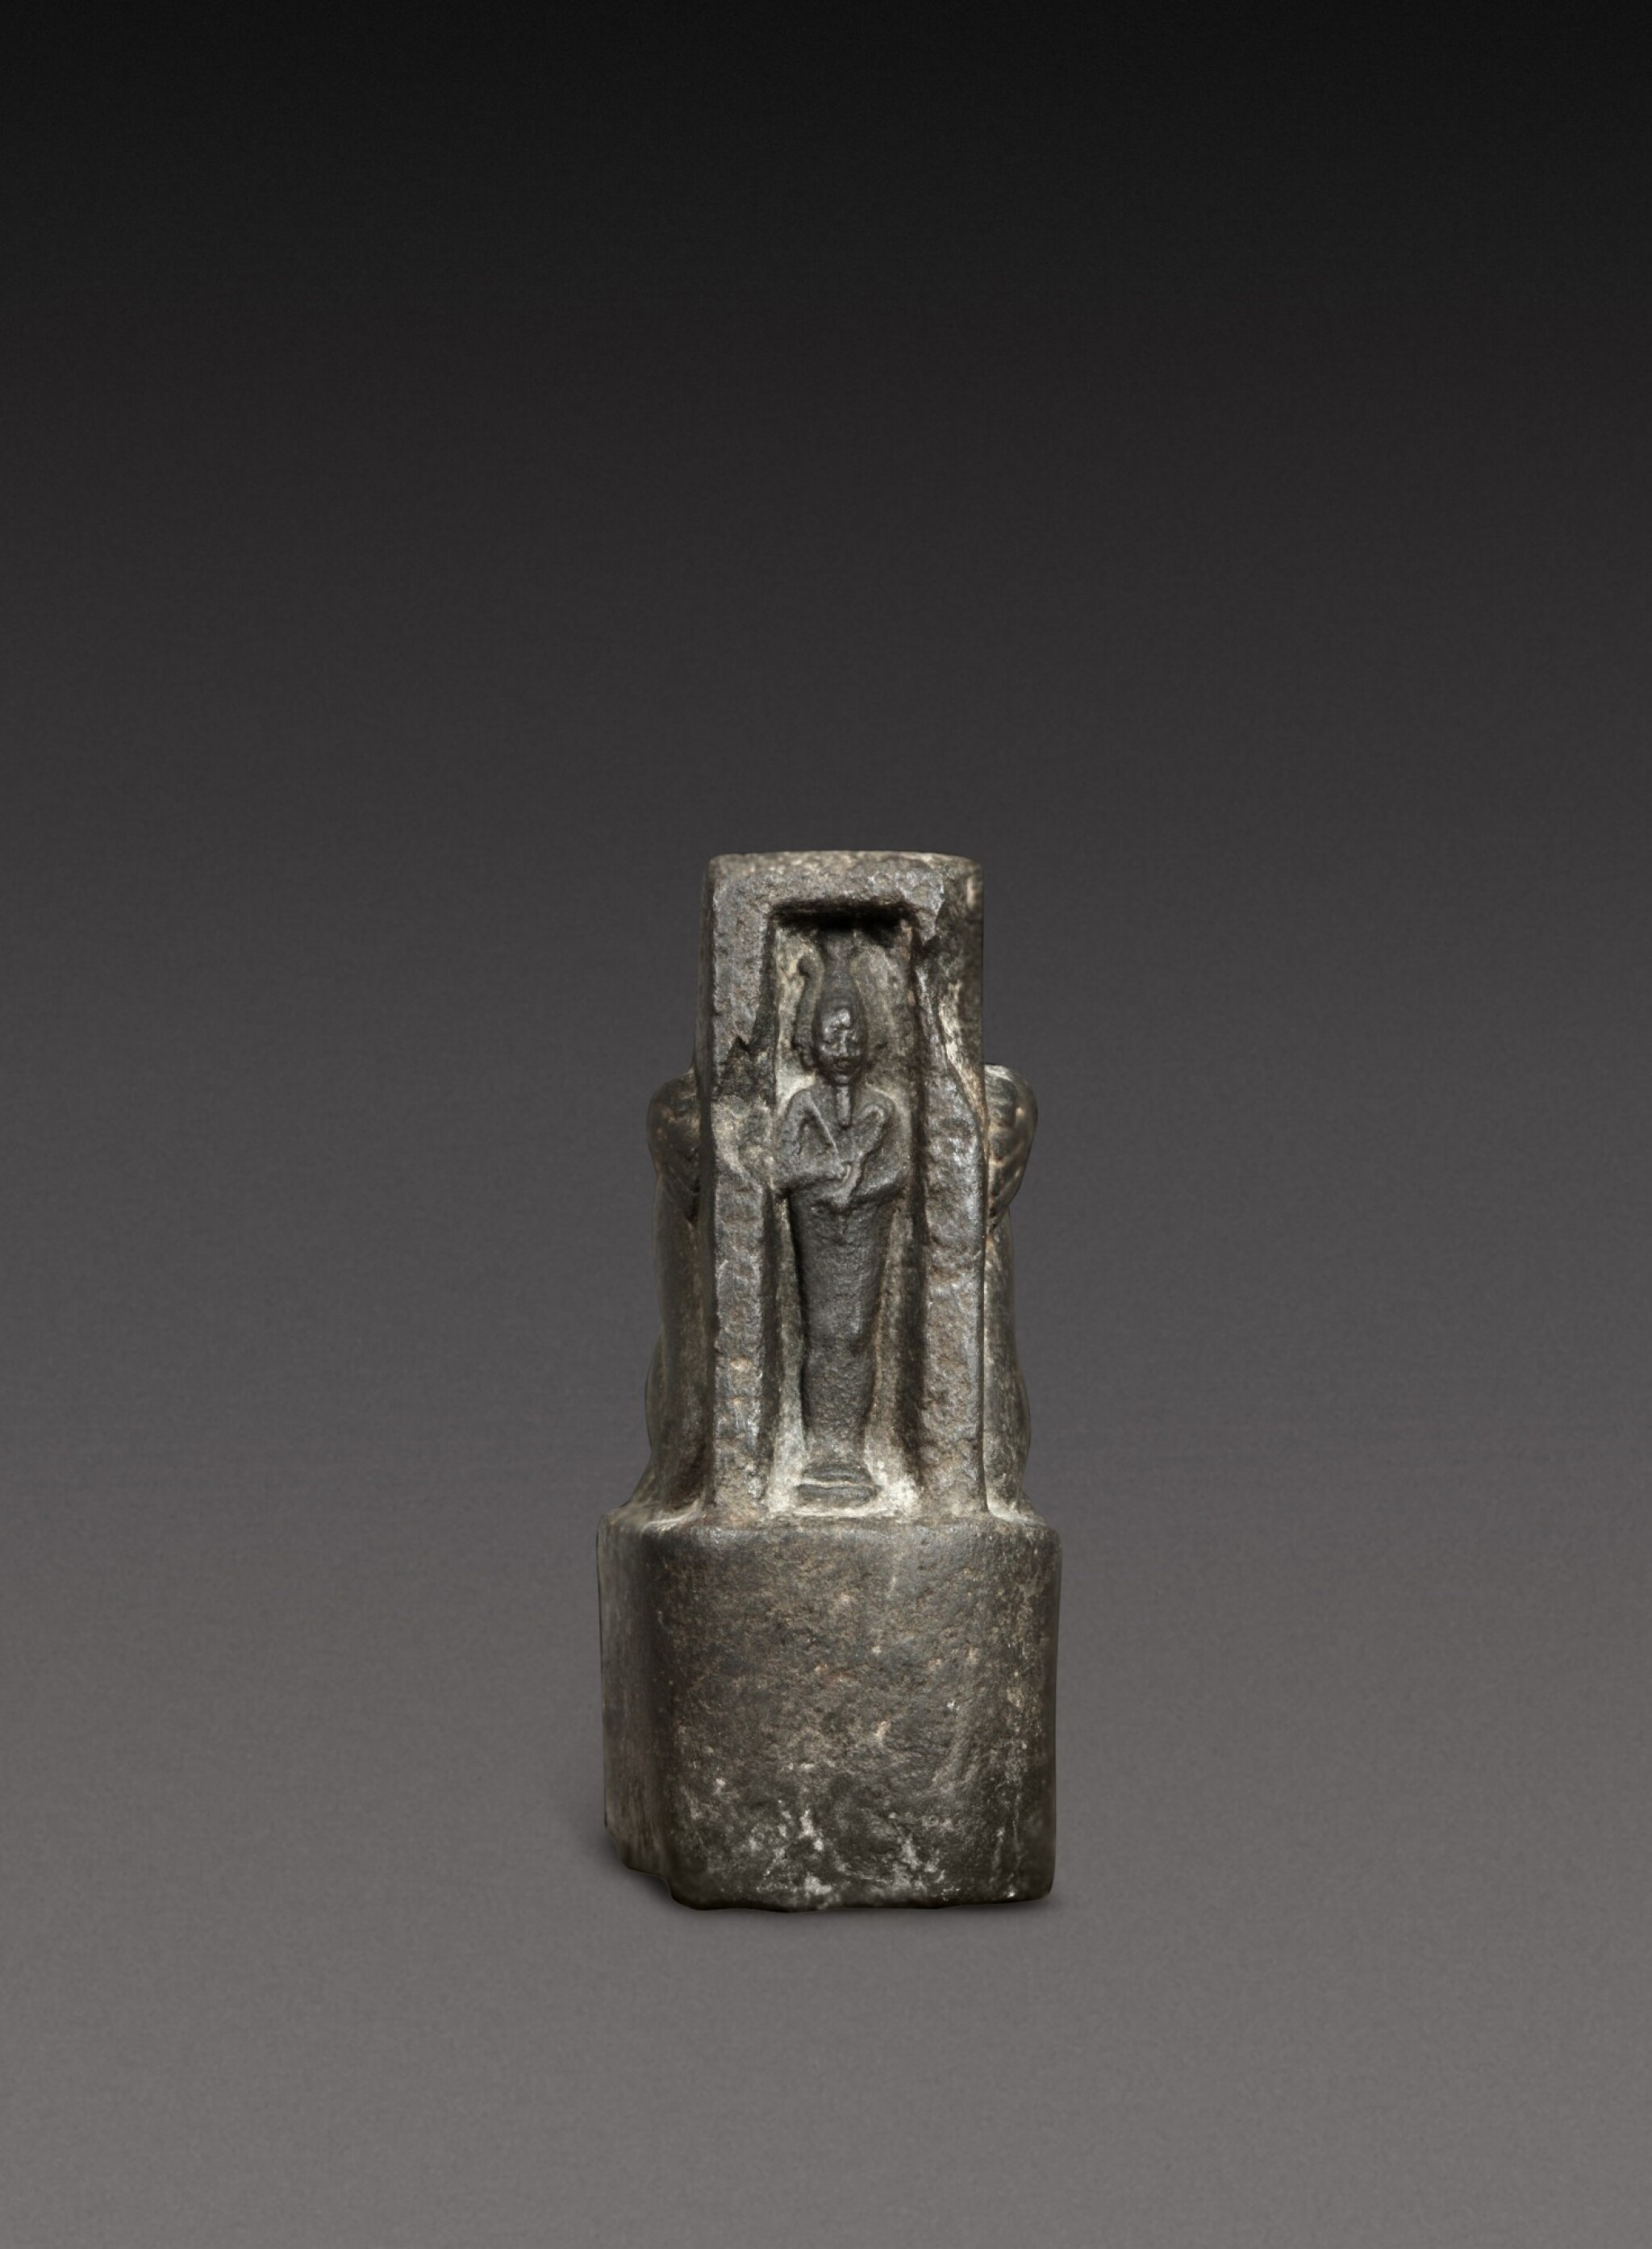 View 1 of Lot 47. A Fragmentary Egyptian Basalt Naophoros, 1st half of the 26th Dynasty, circa 664-600 B.C..